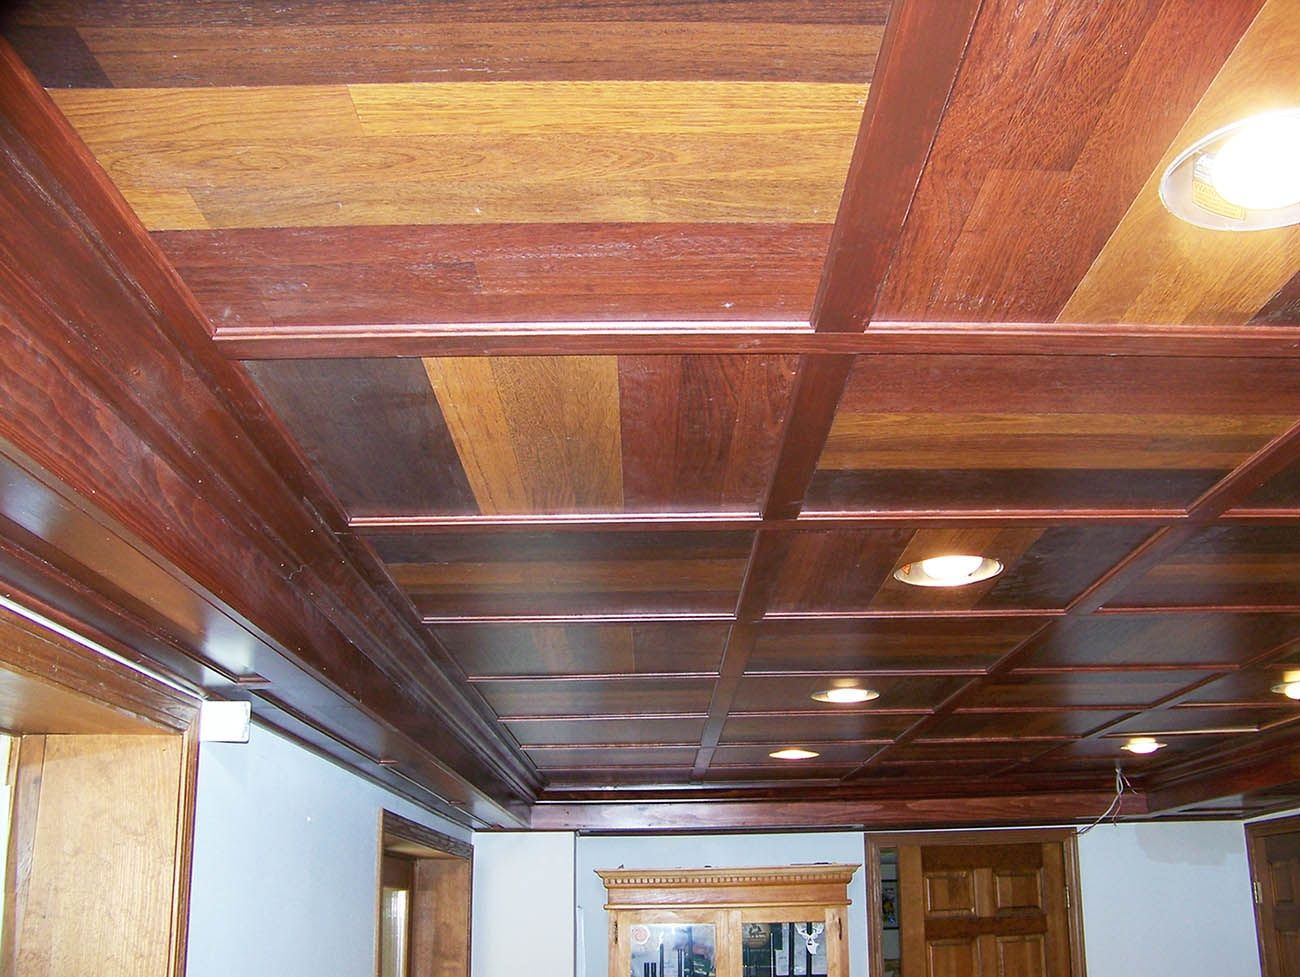 Types Of Insulation For Basement Ceilings & Types Of Insulation For Basement Ceilings | http://dreamtree.us ...